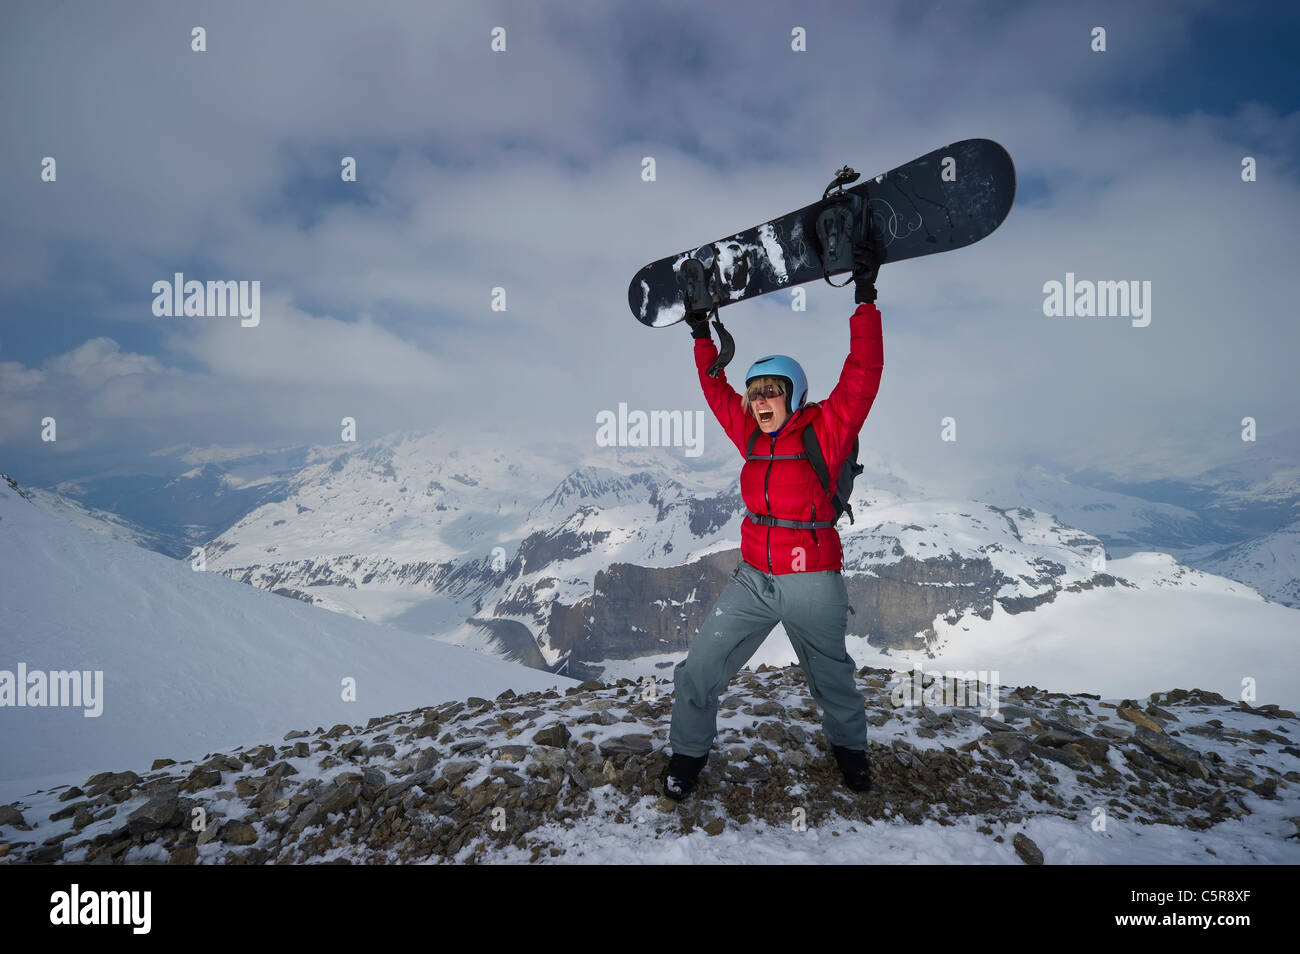 A snowboarder celebrates being on the top of snow covered mountains. - Stock Image